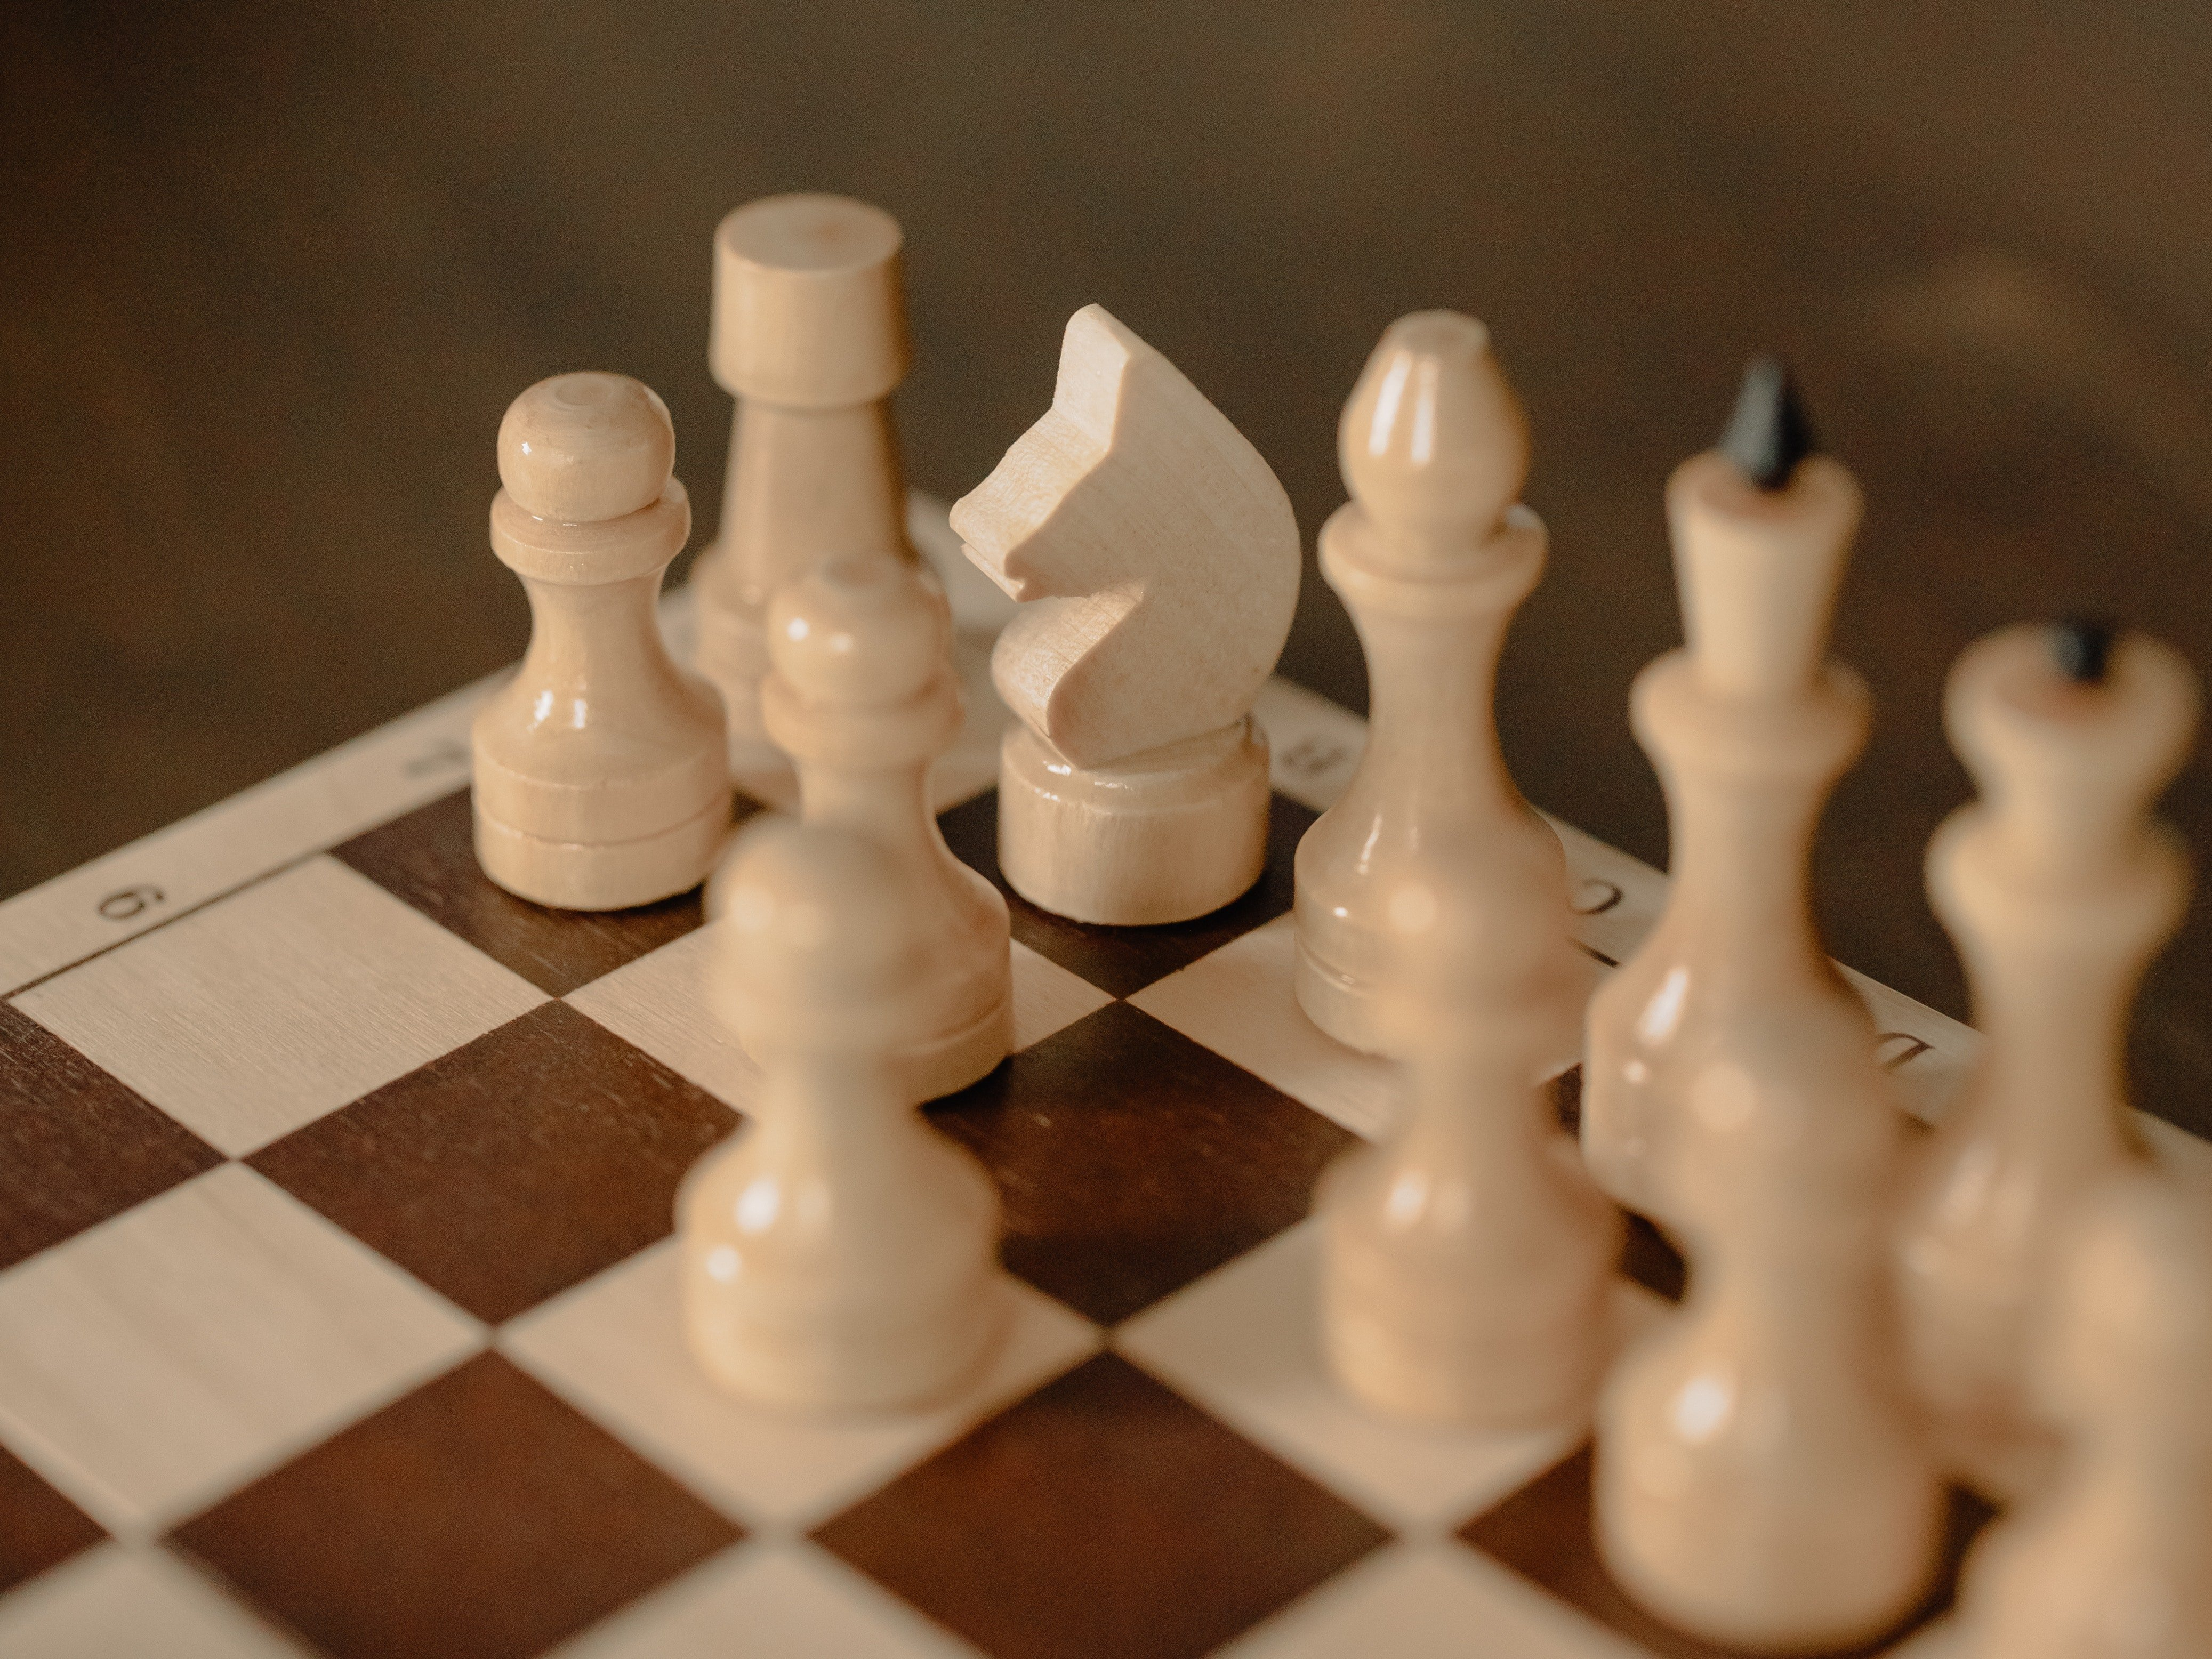 Photo of chess pieces on a chess board | Photo: Pexels